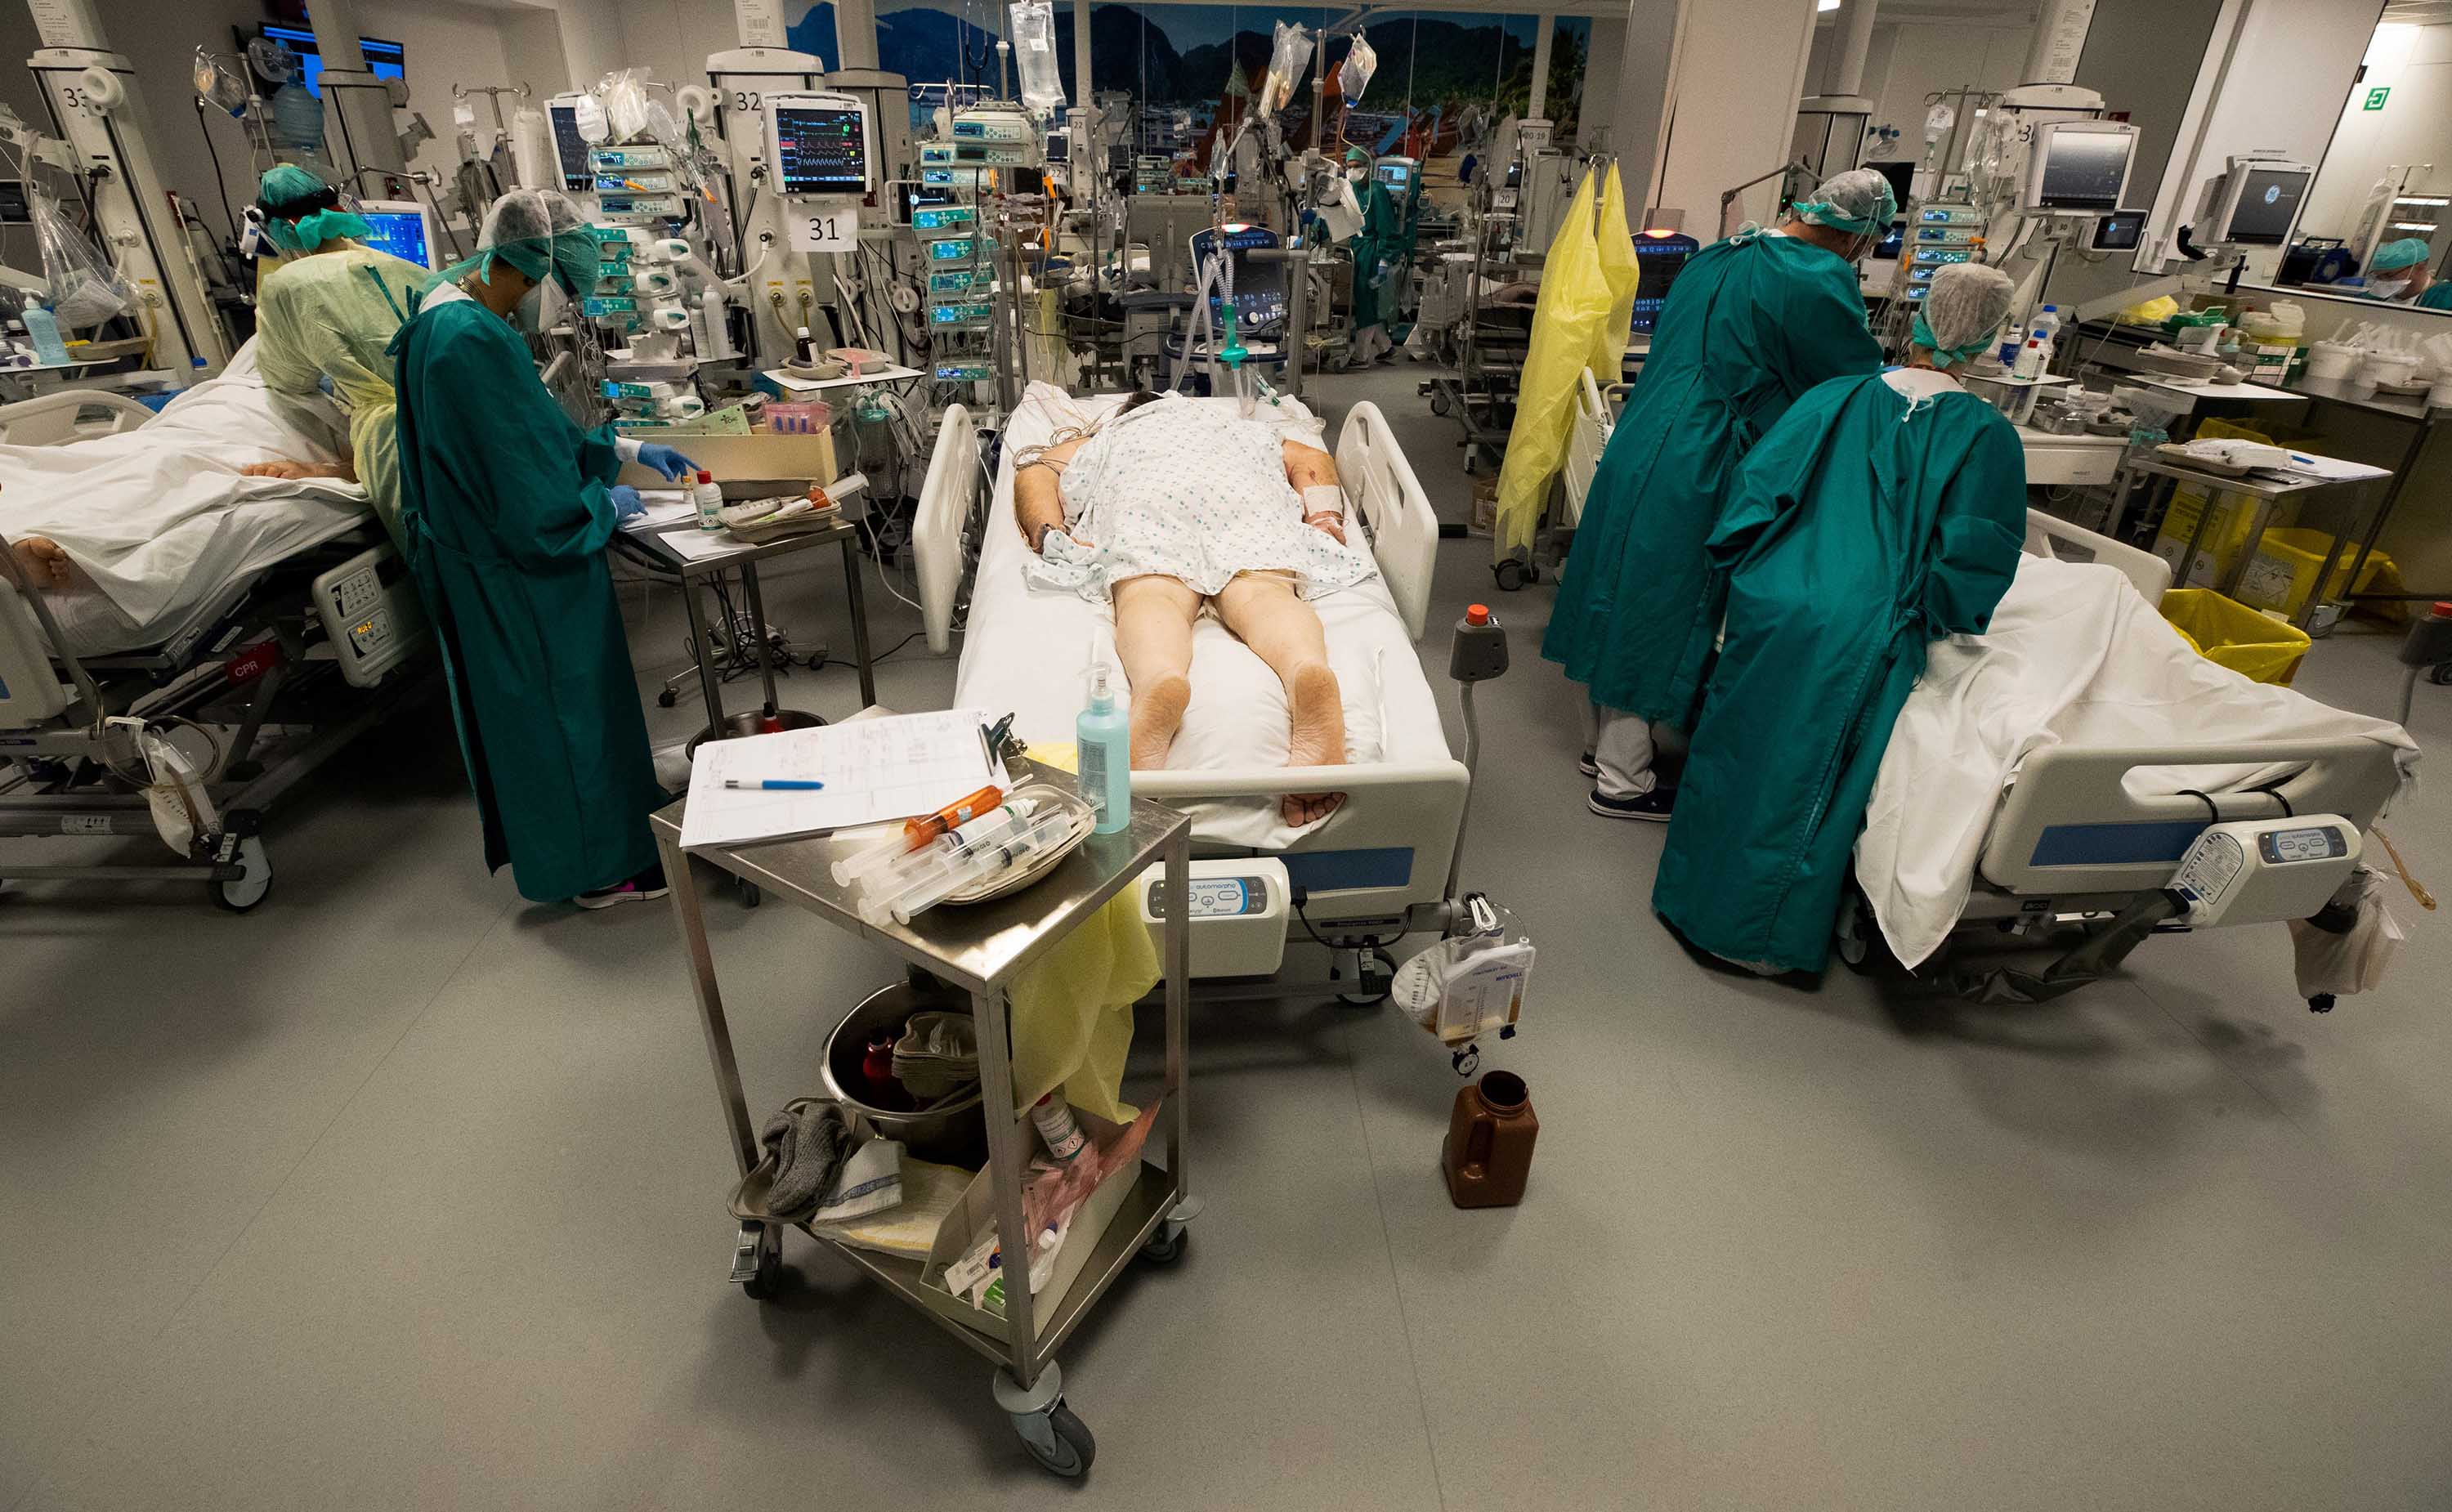 Medical staff members treat patients in the Covid-19 unit at a hospital in Liege, Belgium, on October 29.